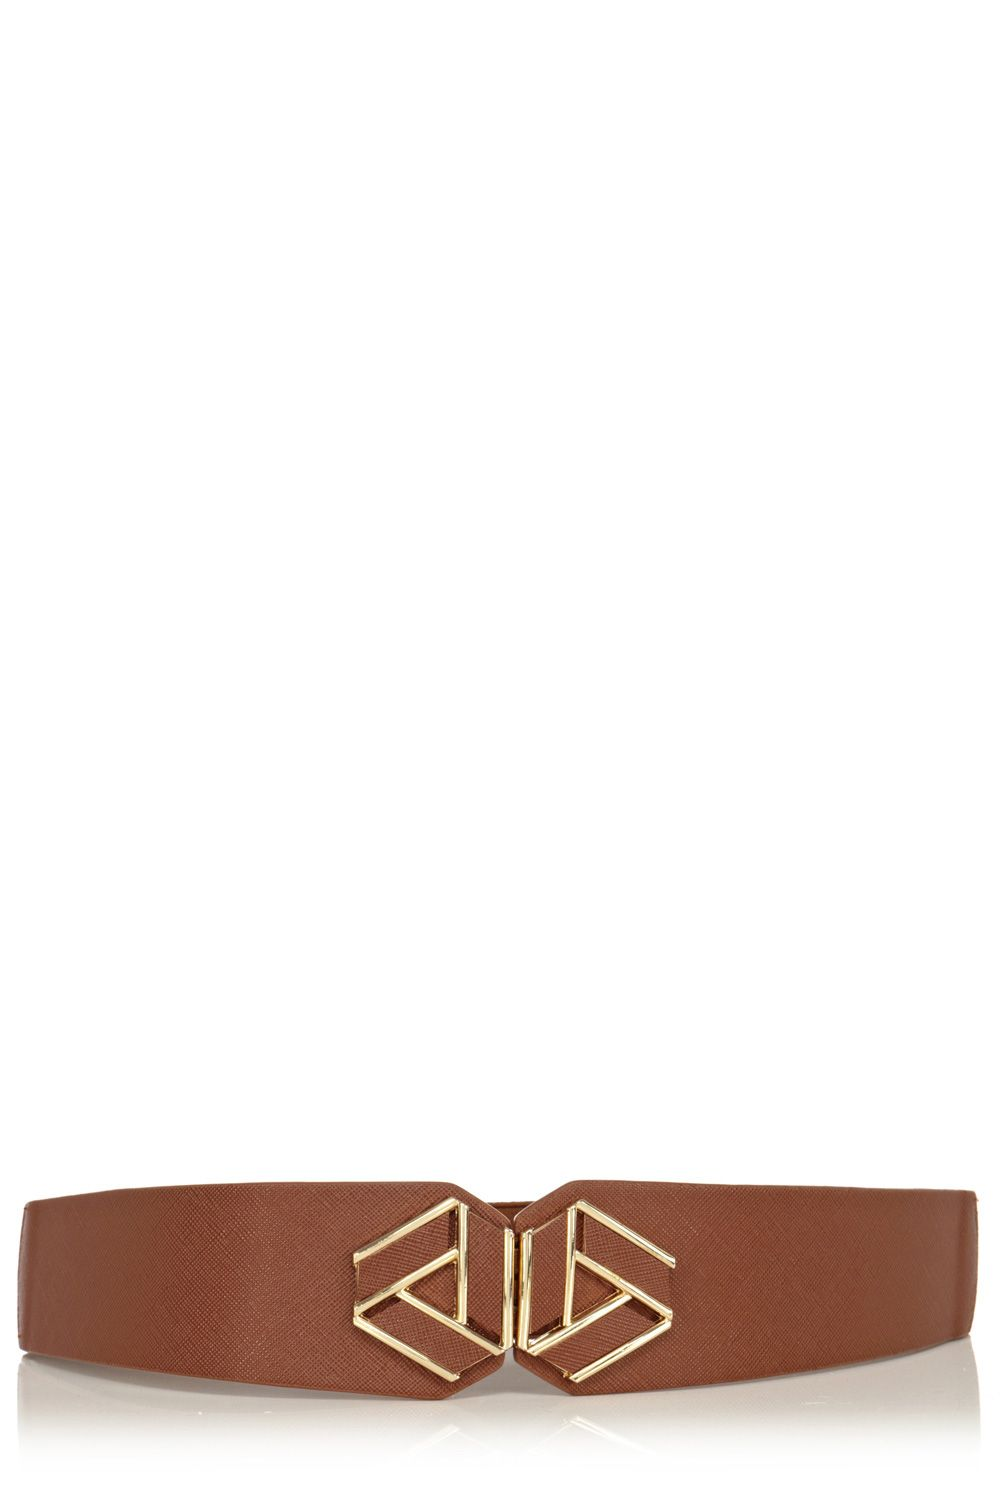 Cross hatch vintage waist belt